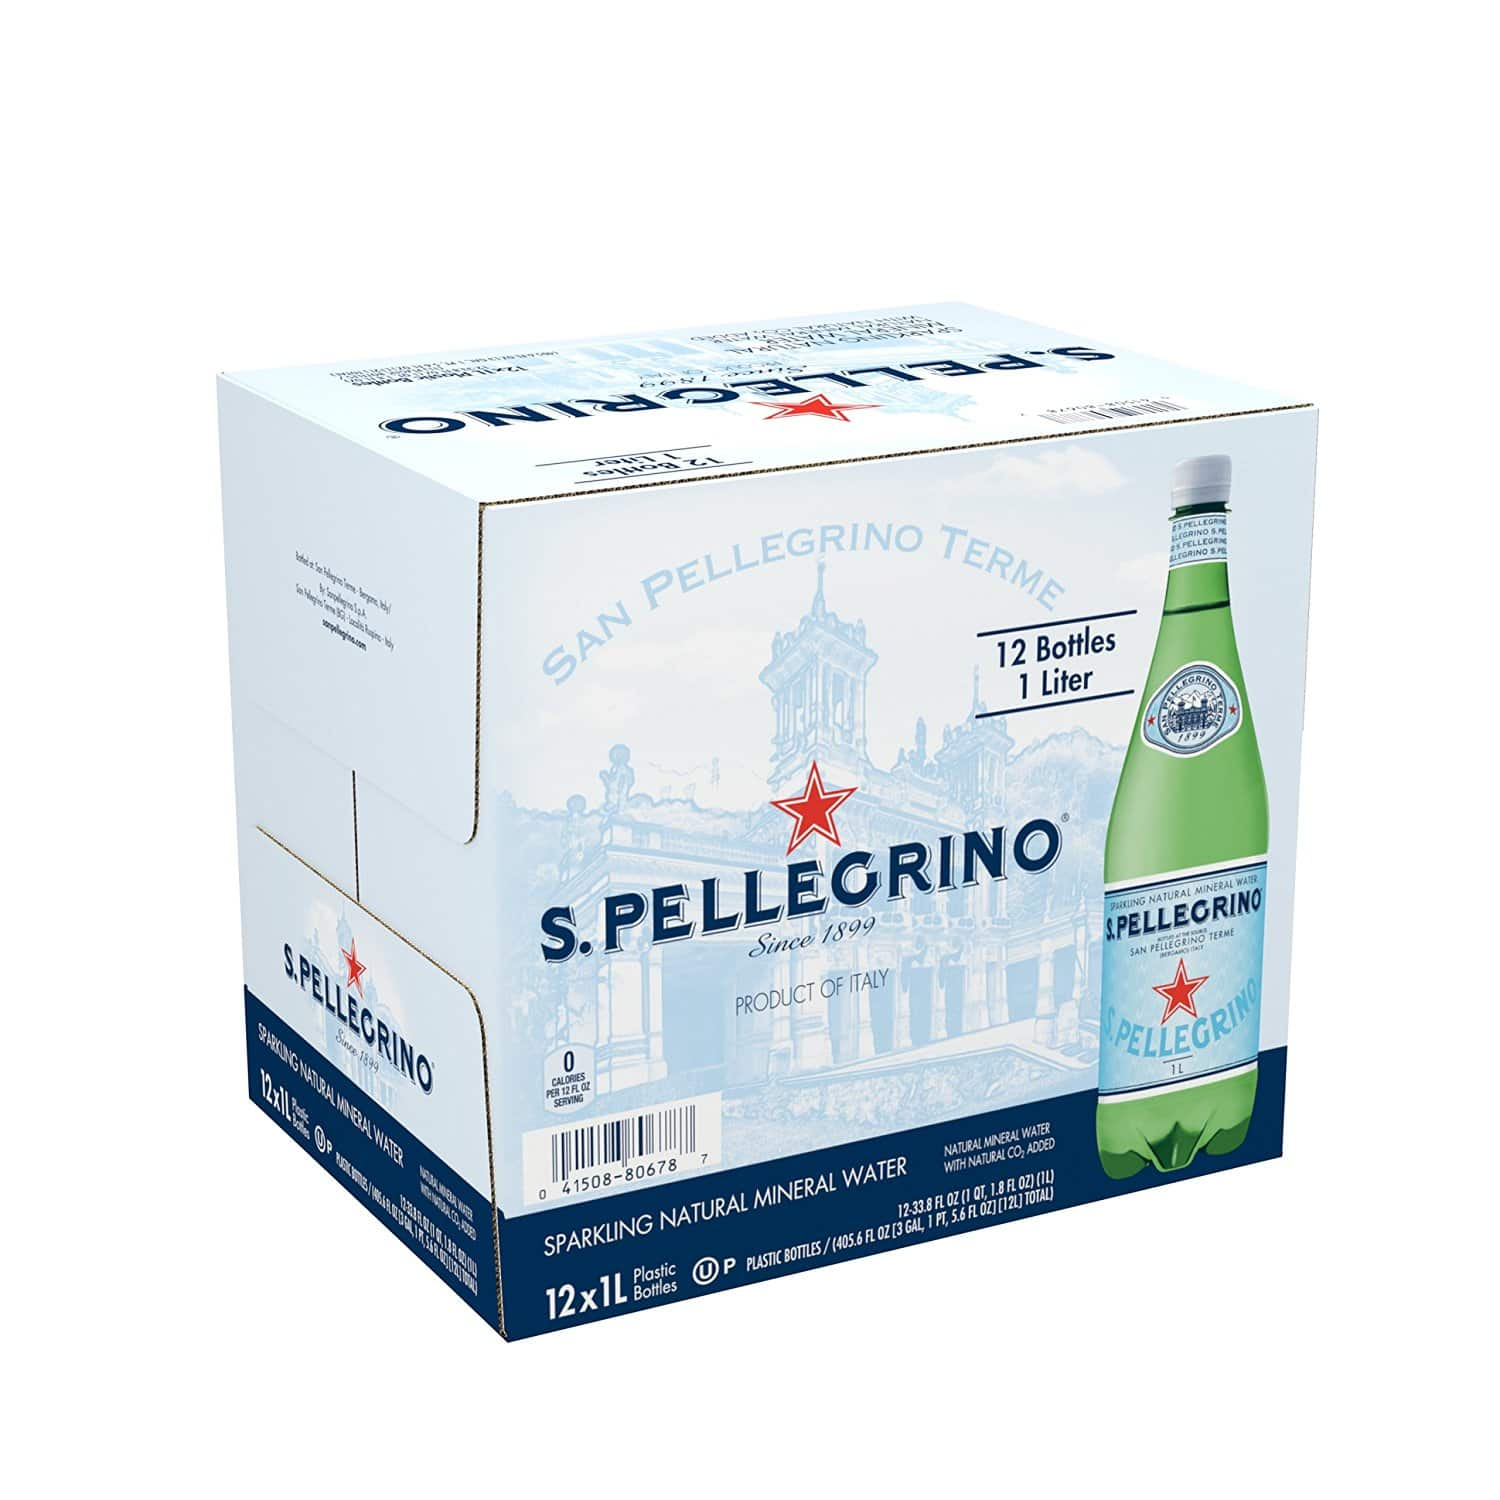 Prime Members: 12-Pack 33.8oz San Pellegrino Sparkling Natural Mineral Water $12 + Free Shipping